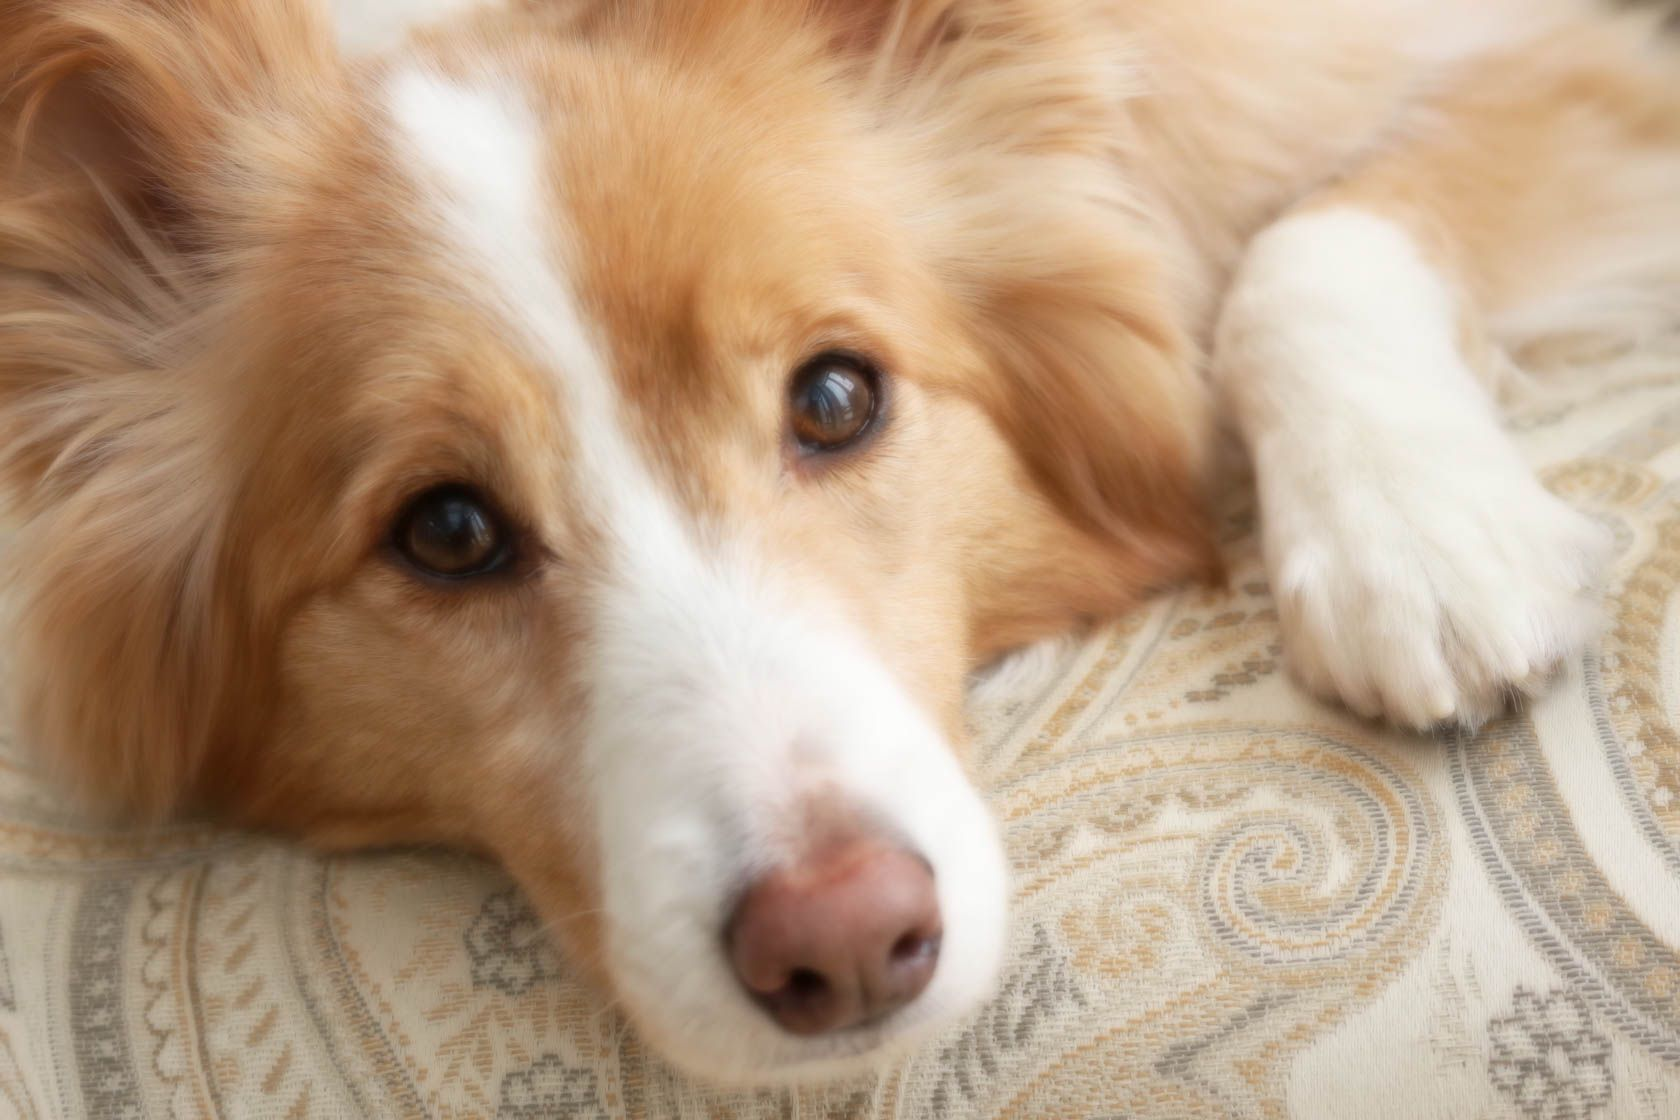 Dog Close Up Taken With Canon Eos 700d Dslr Camera Best Price And